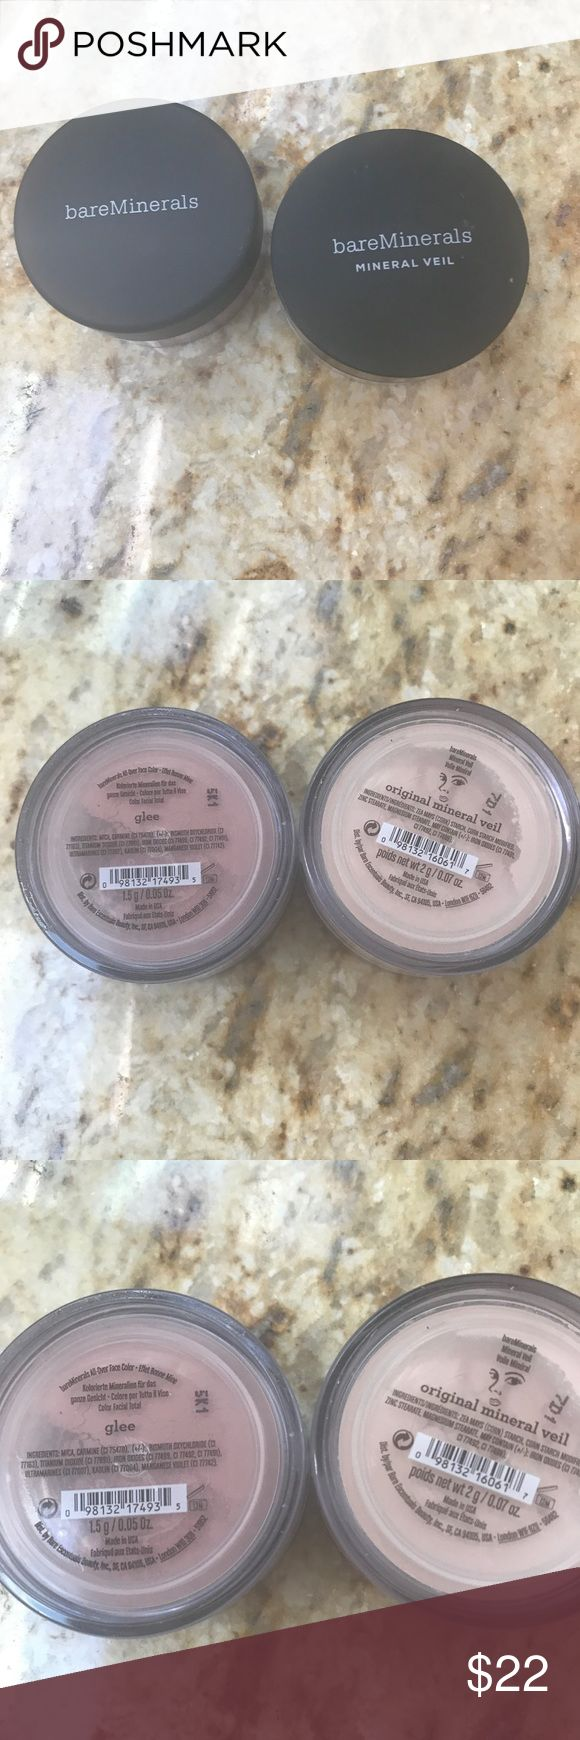 Bare minerals New mineral veil & Glee Blush Bare minerals set New Original mineral veil and New Glee blush. Unopened  Glee is a nice warm blush.  Happy Shopping! Makeup Blush